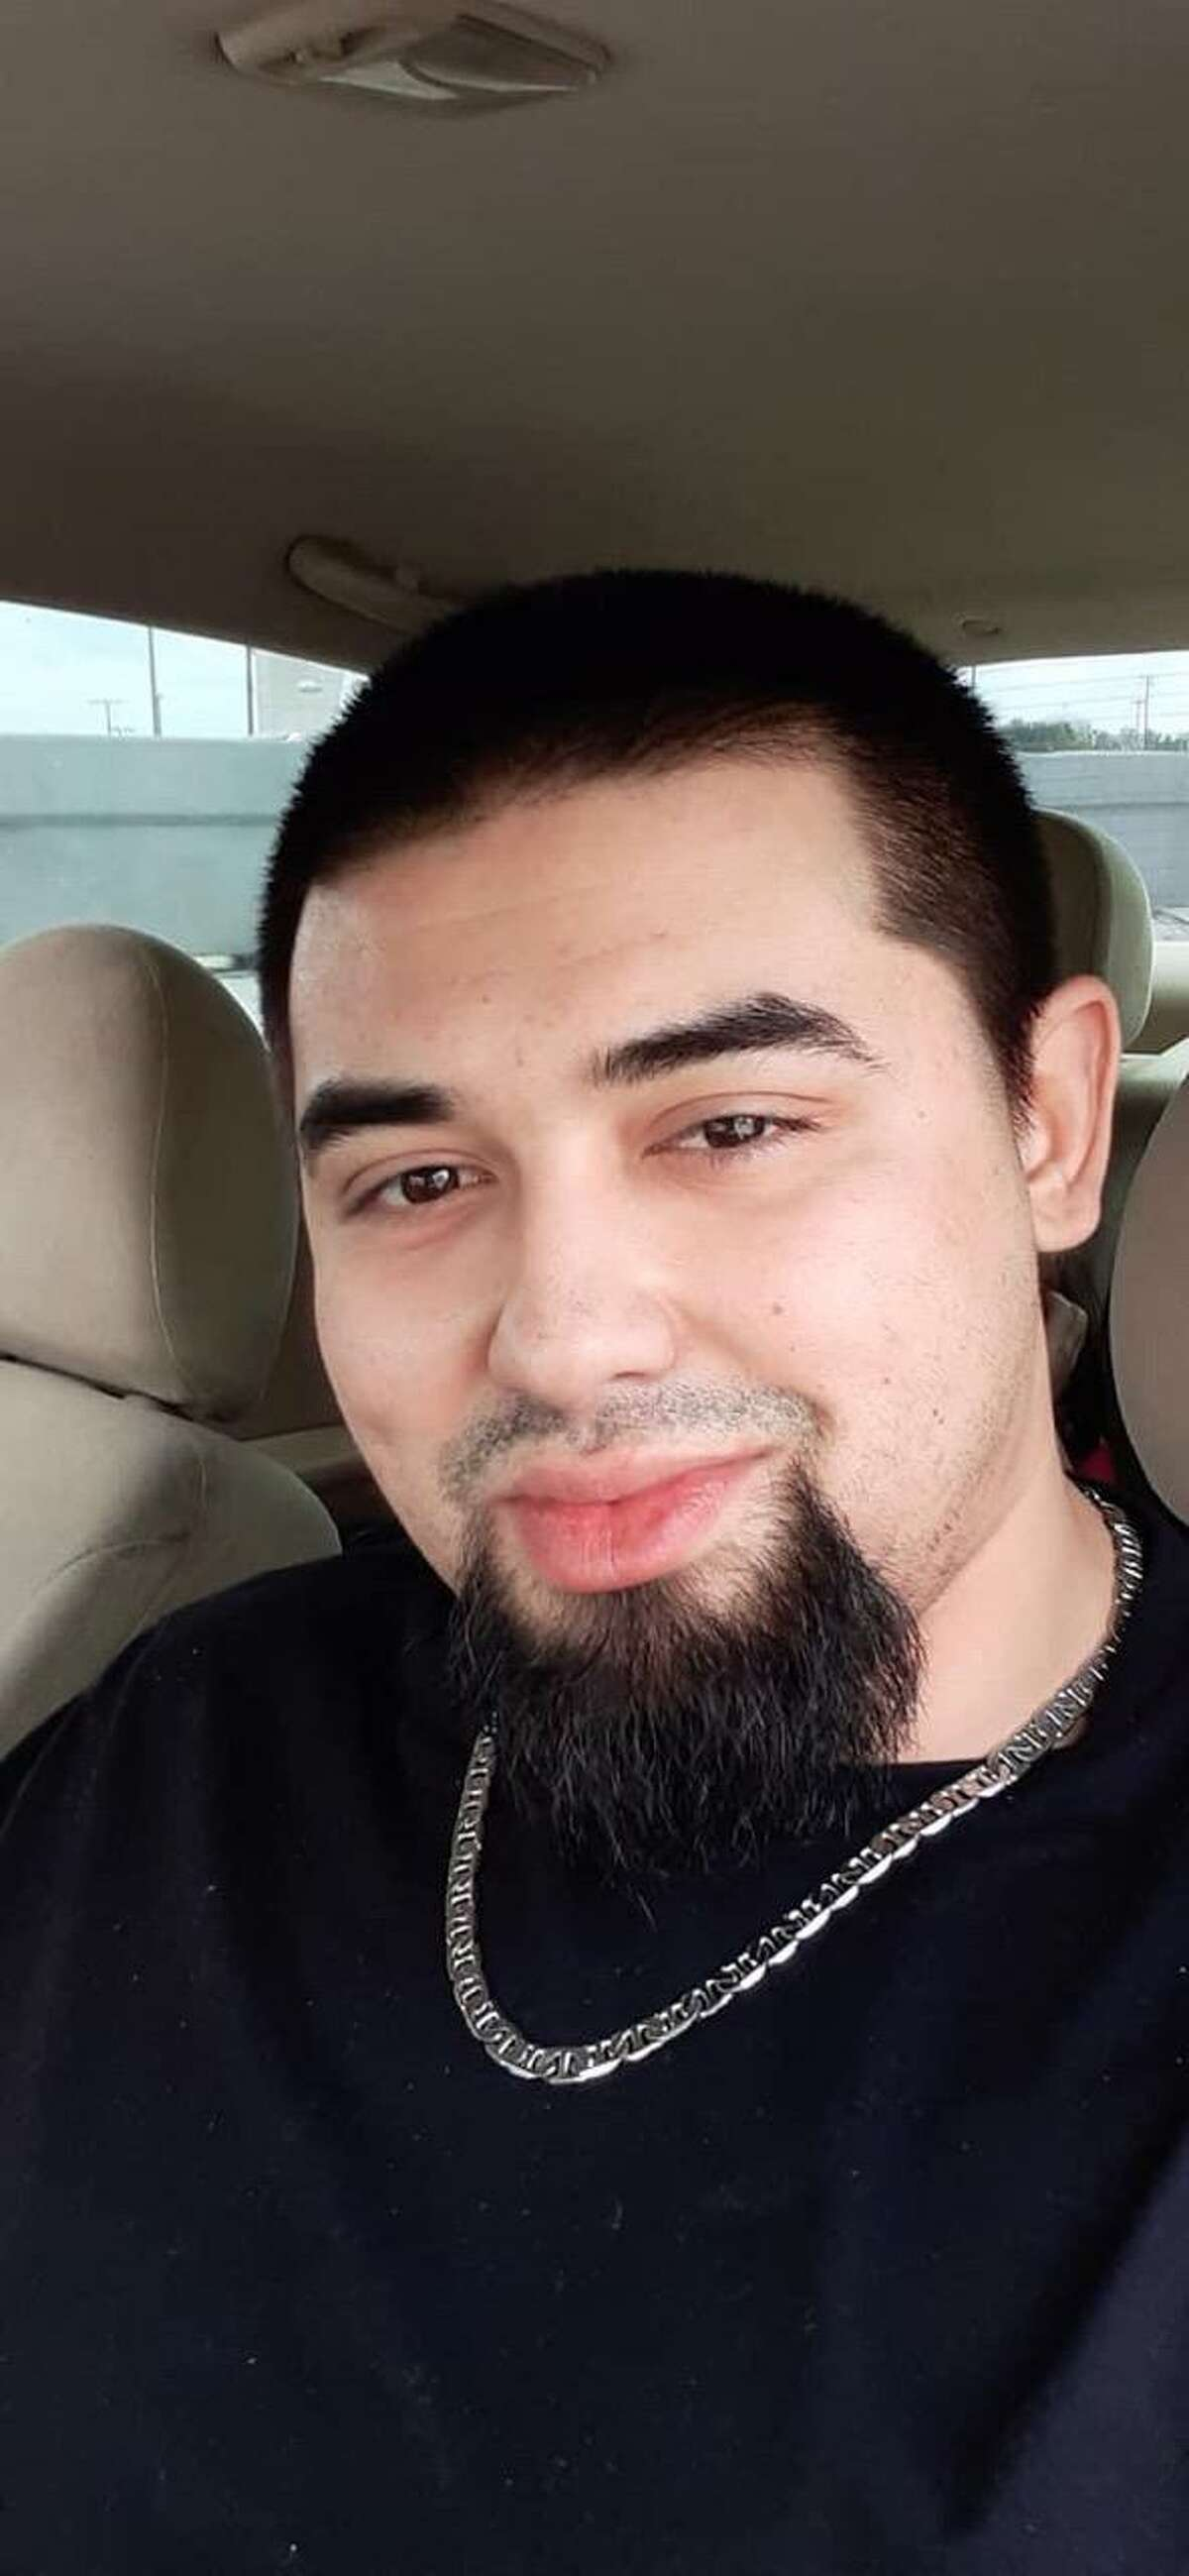 Nicolas Chavez was shot and killed by police April 21 in the 800 block of Gazin, where police said he threatened officers and neighbors with a weapon.